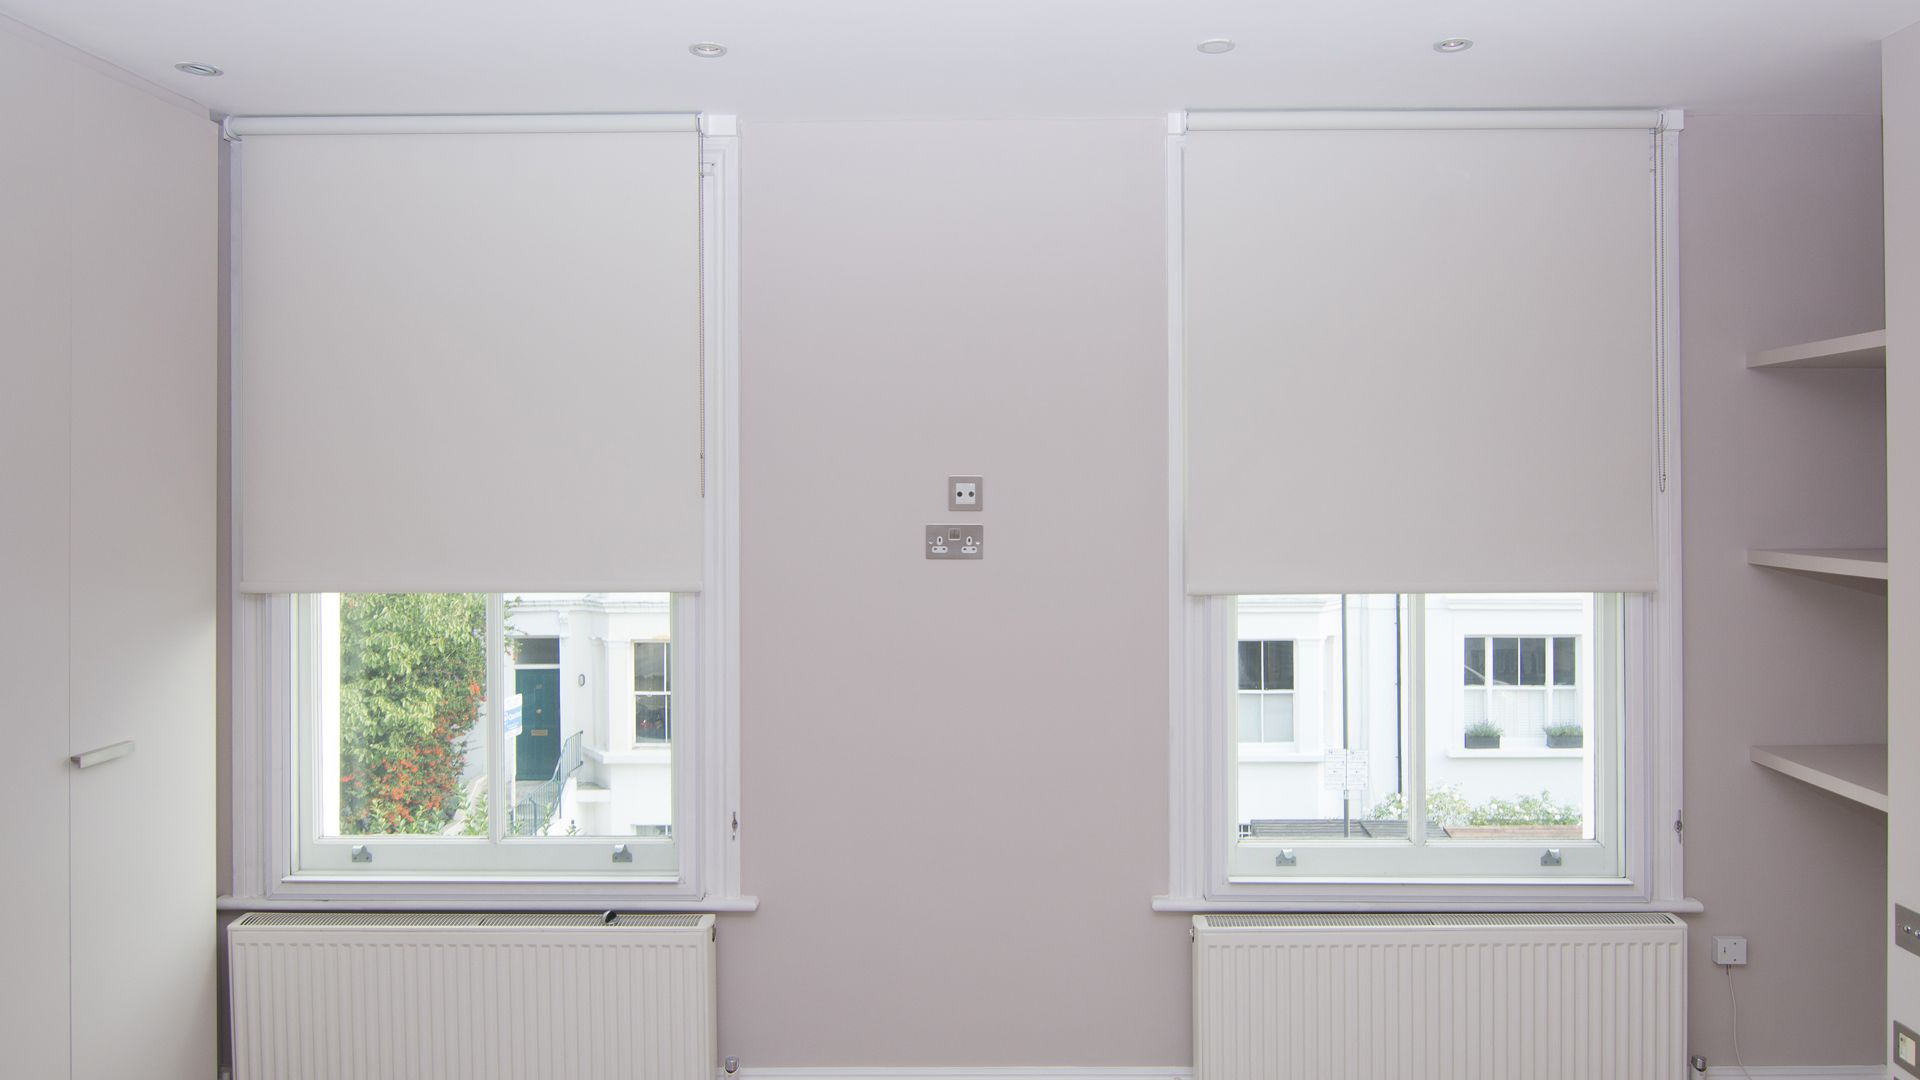 Blackout Roller Blinds In White Fitted To Bedroom Sash